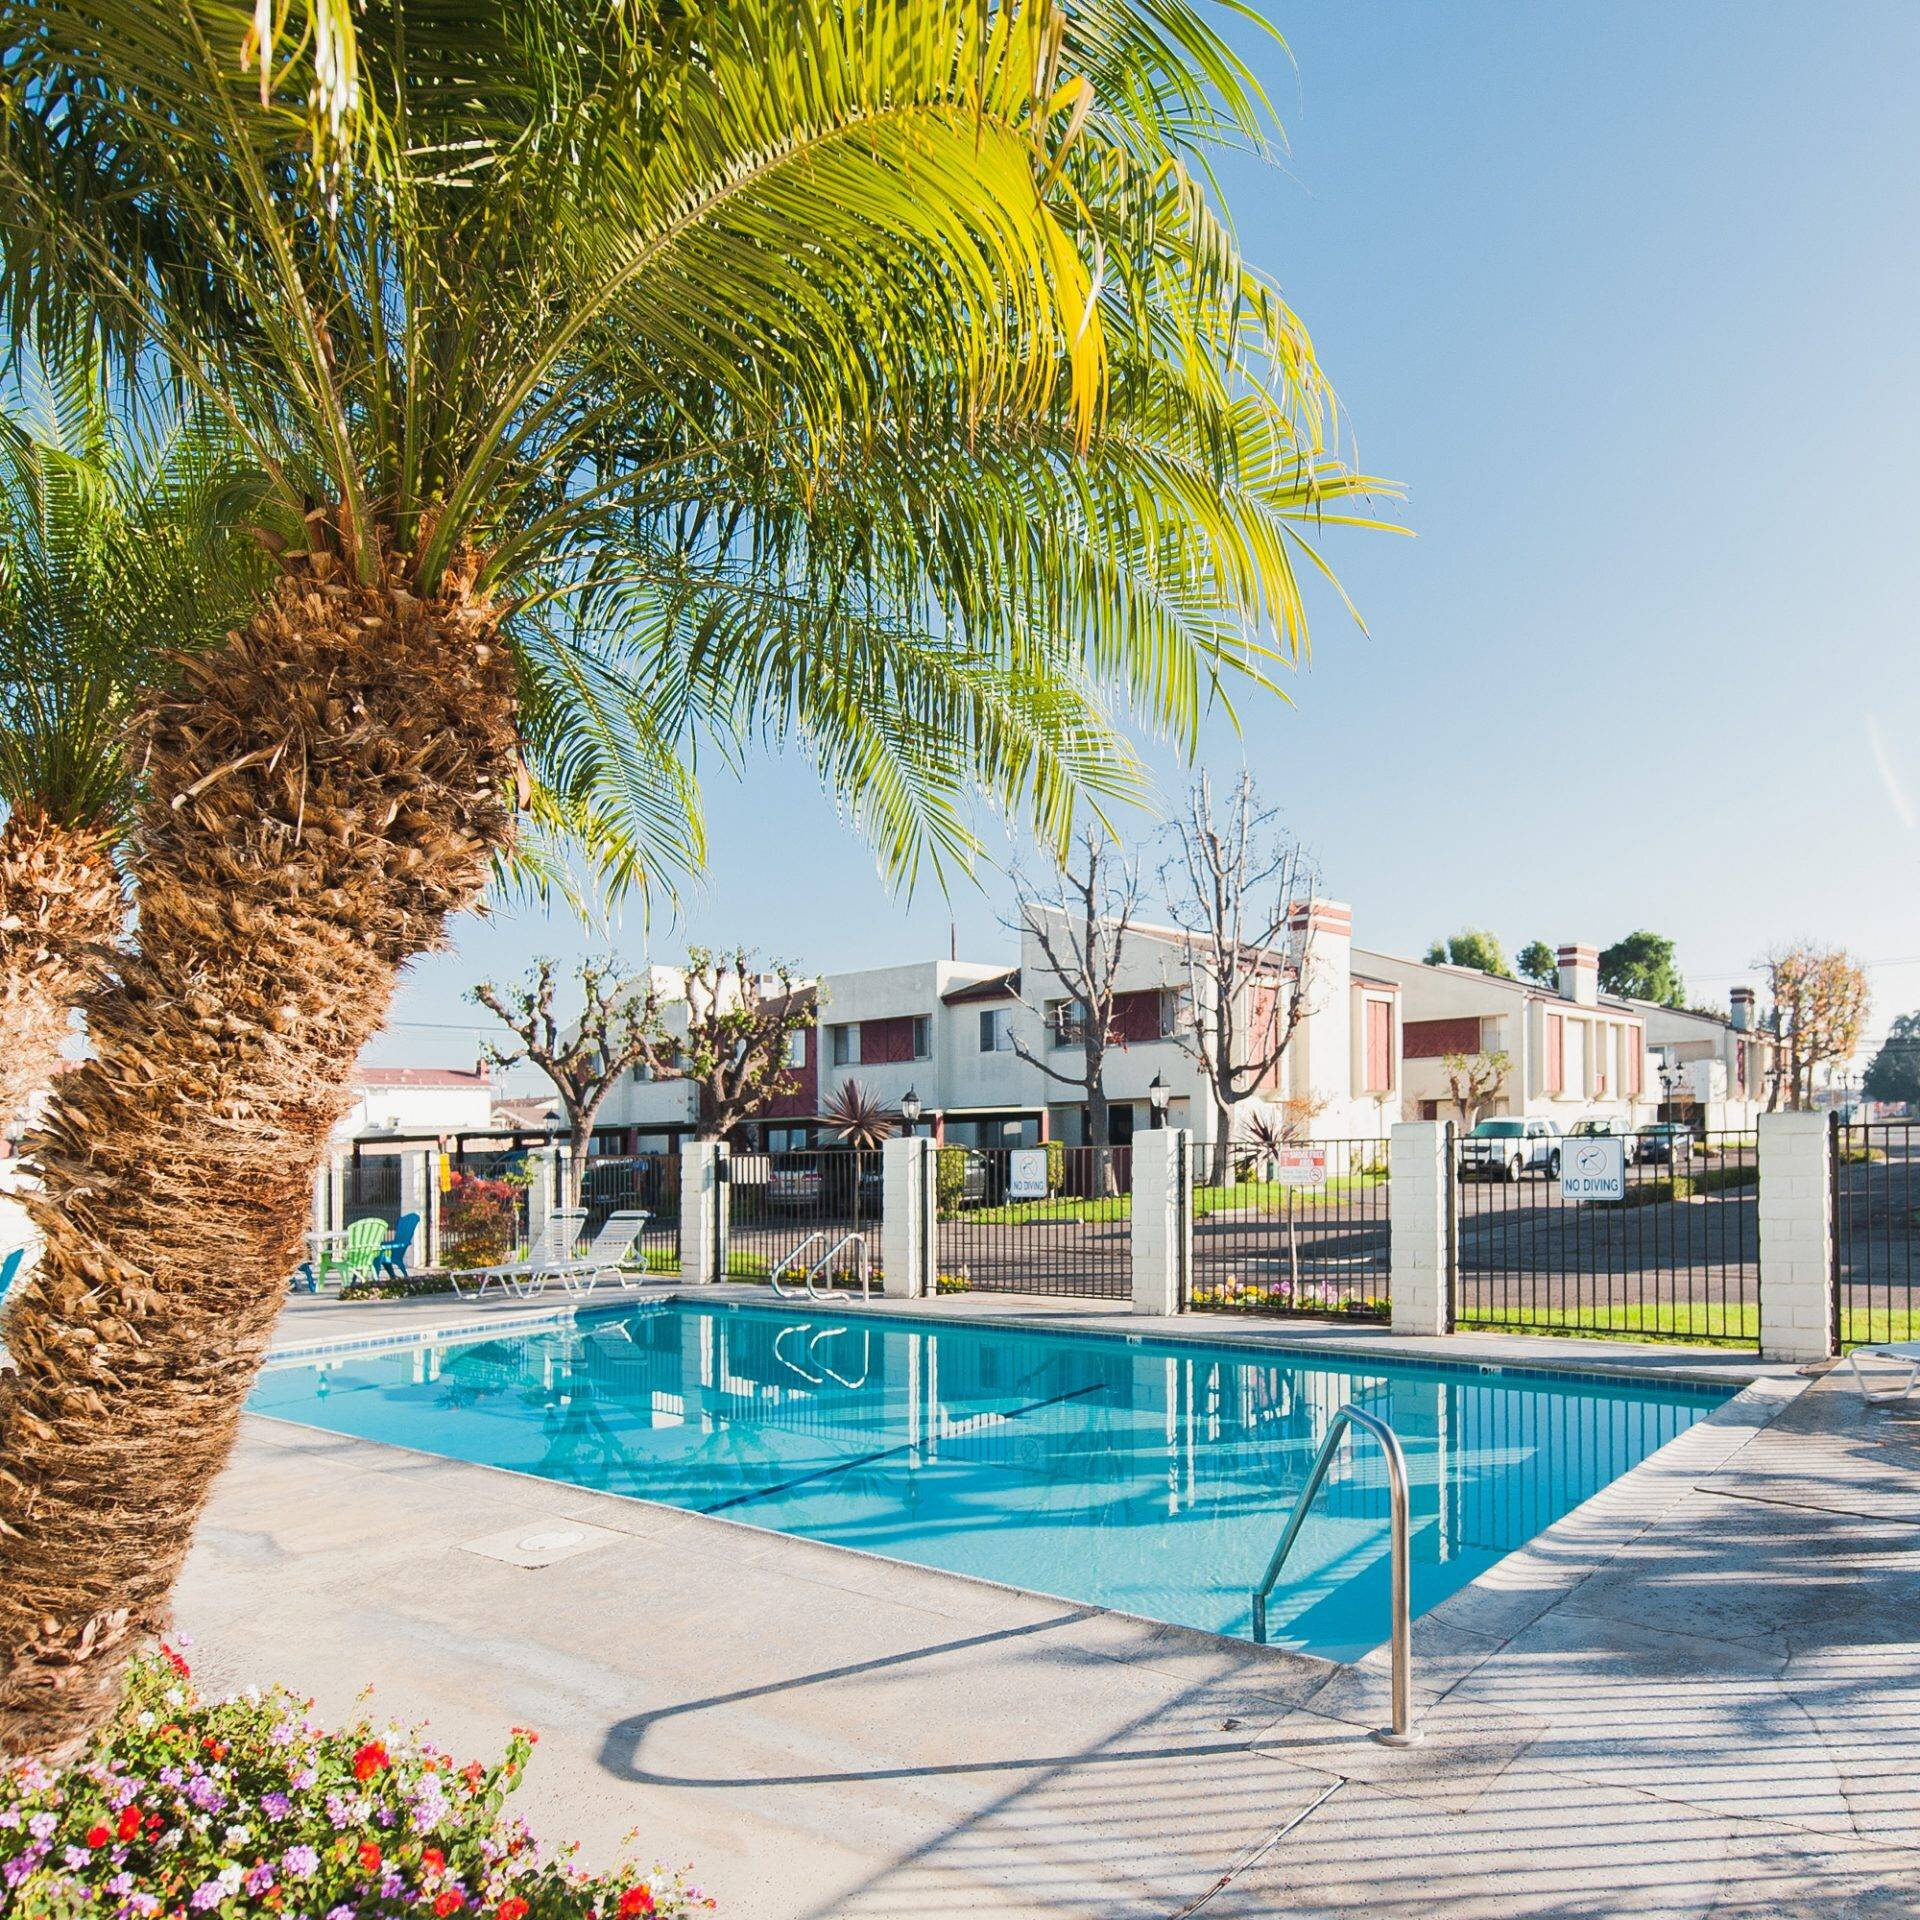 Cypress Townpark Apartments - The Cypress Townpark Apartments feature 75 two-story townhouses surrounding a community pool and patio. Each townhouse is designed to feel private, and the tree-studded property is located in a peaceful neighborhood nearby to highly-rated schools.